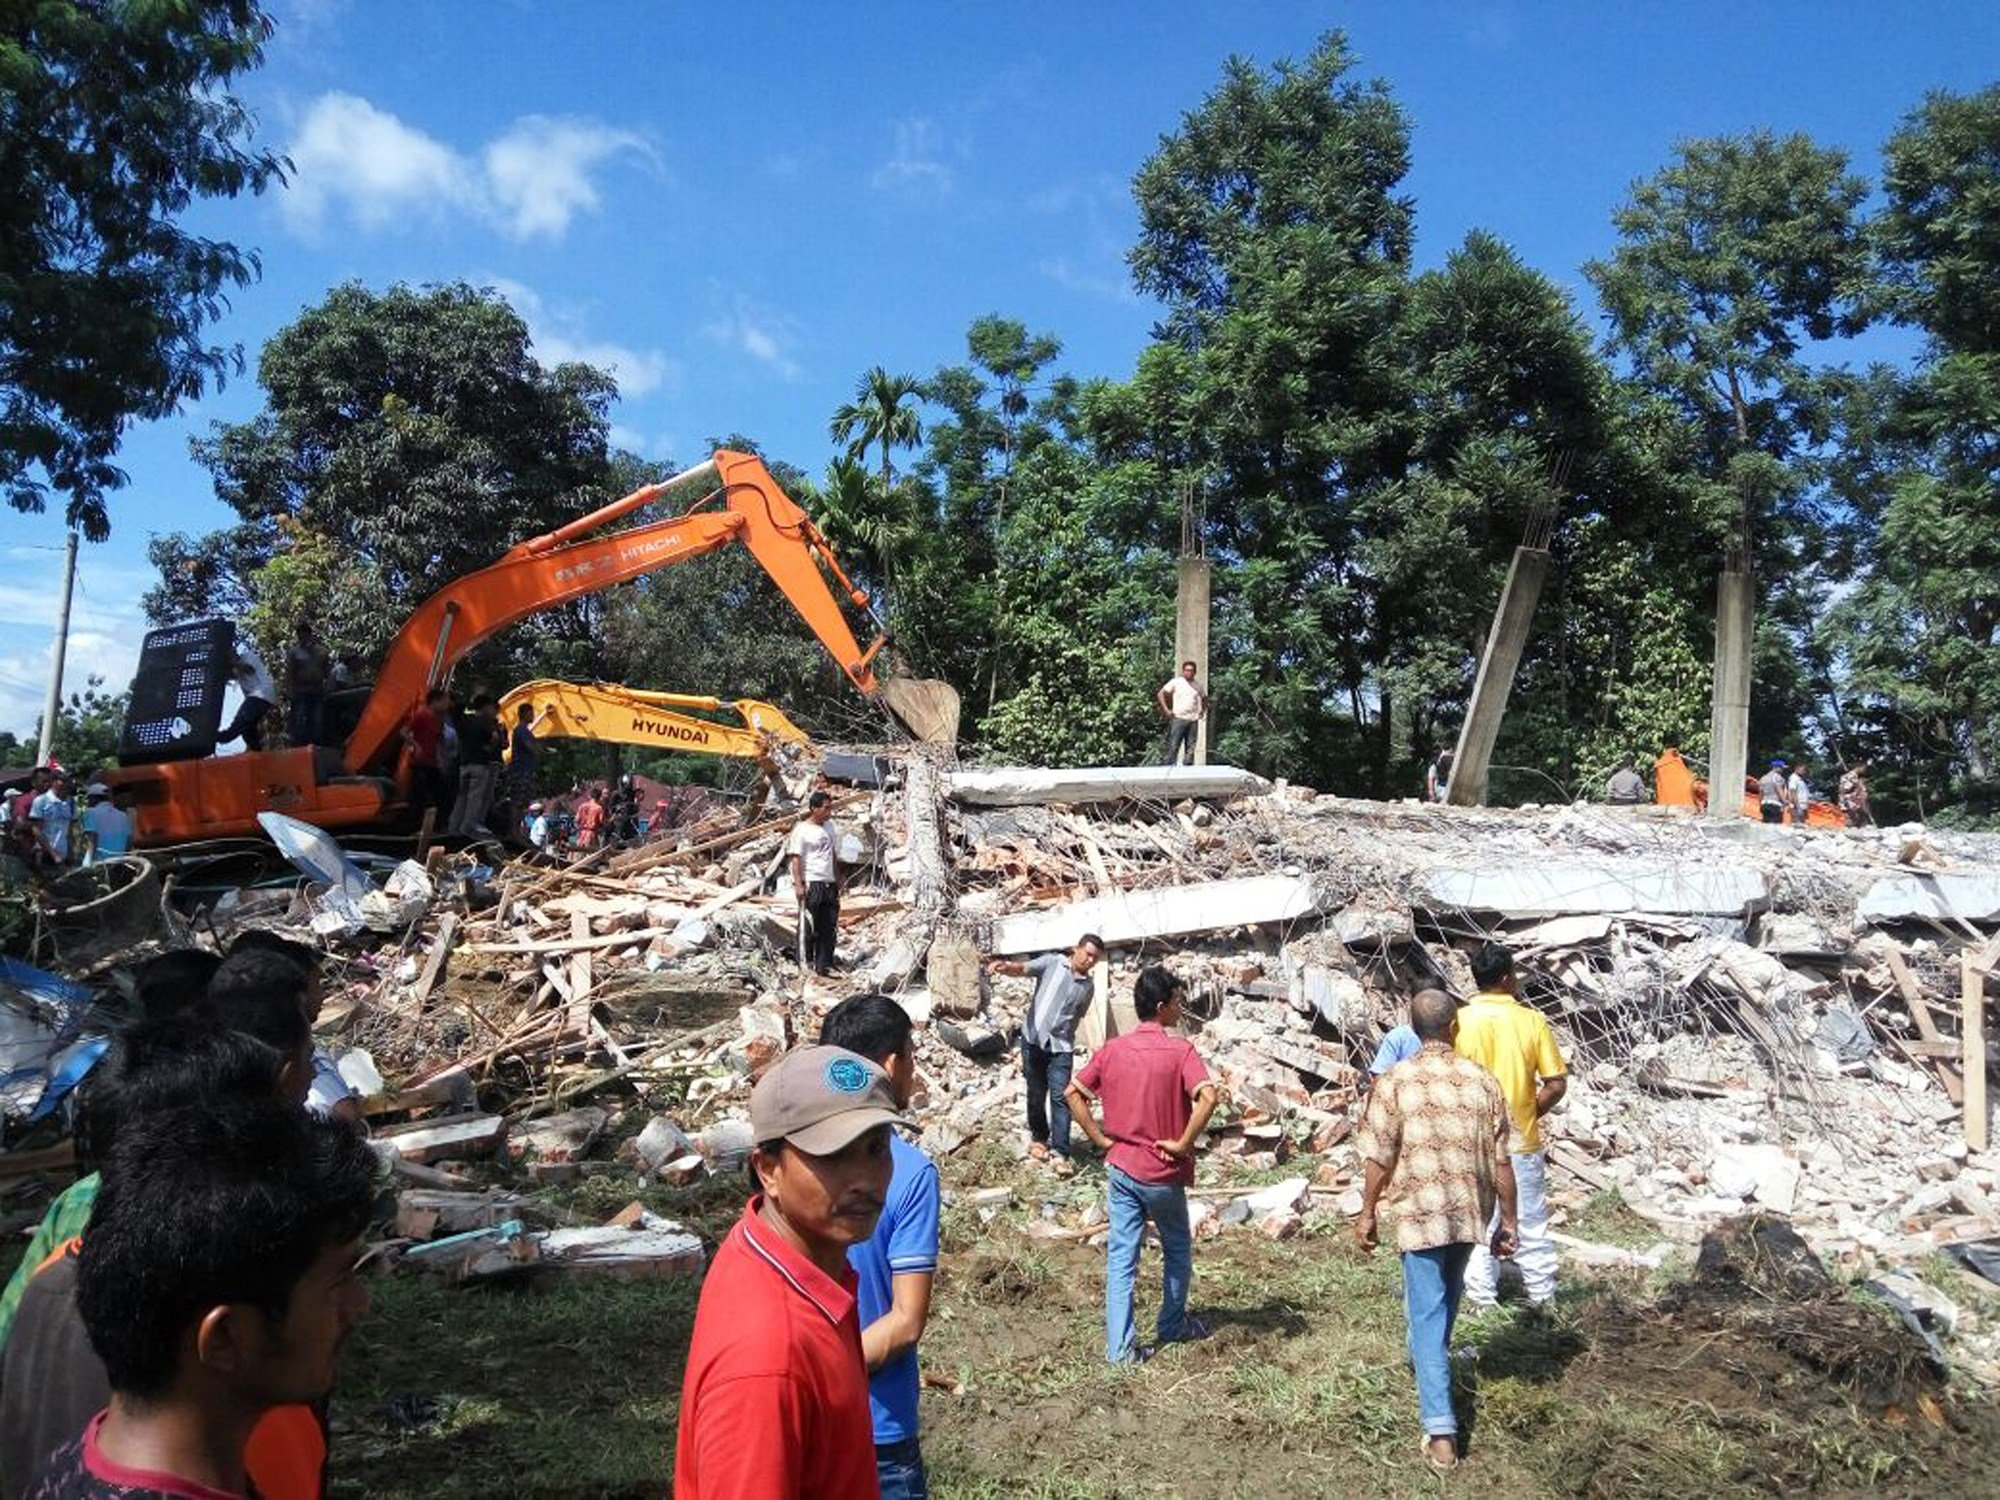 Rescuers use heavy machine to search for survivors under the rubble of a collapsed building after an earthquake in Pidie Jaya, Aceh province, Indonesia, Wednesday, Dec. 7, 2016.